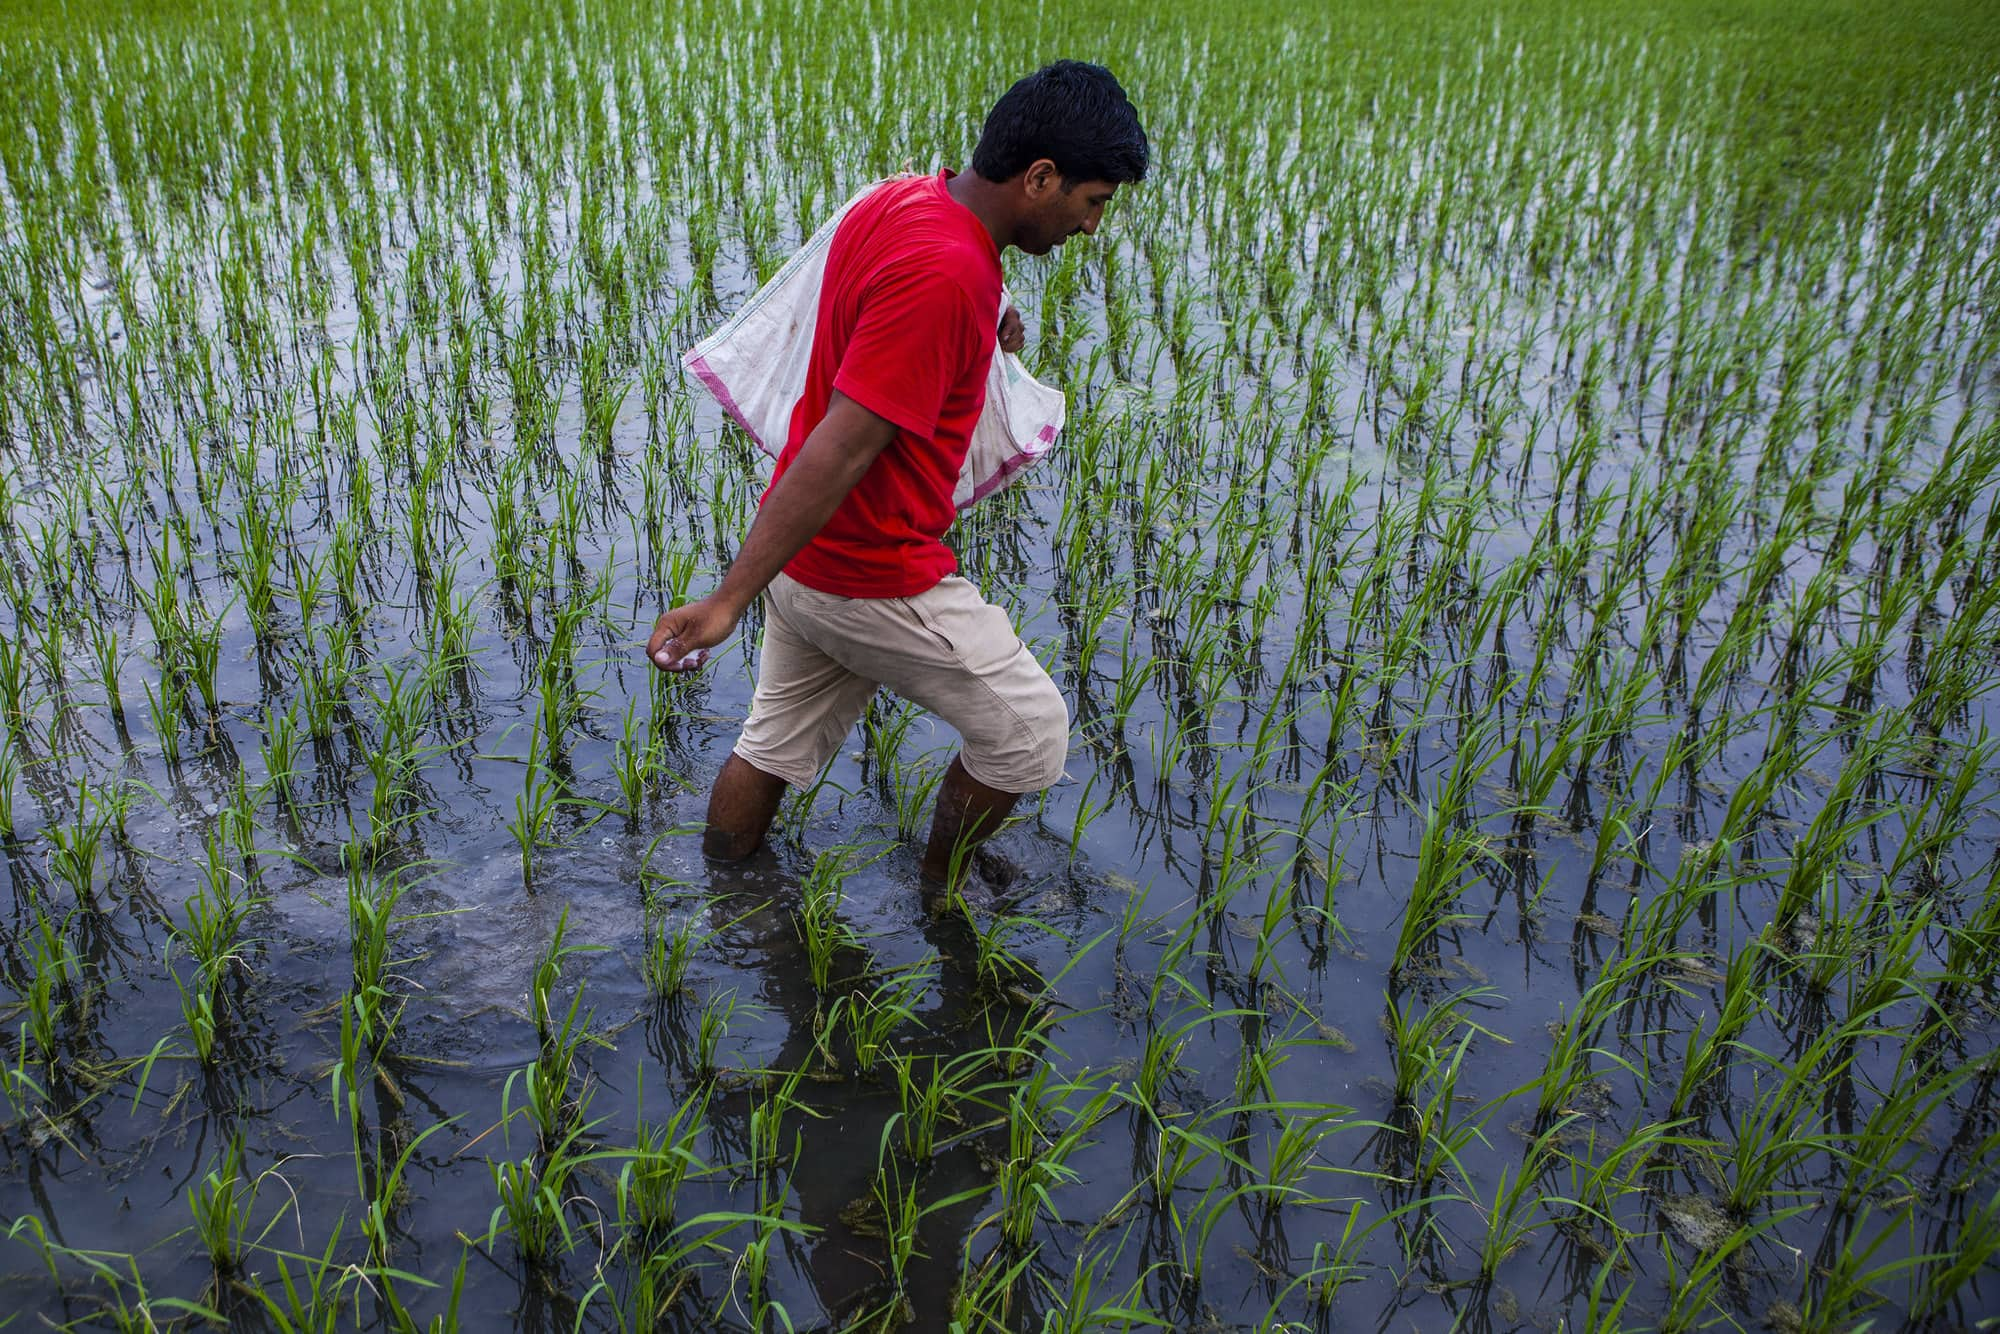 Transforming Food Systems from Greenhouse Gas Sources to Sinks (S2S)